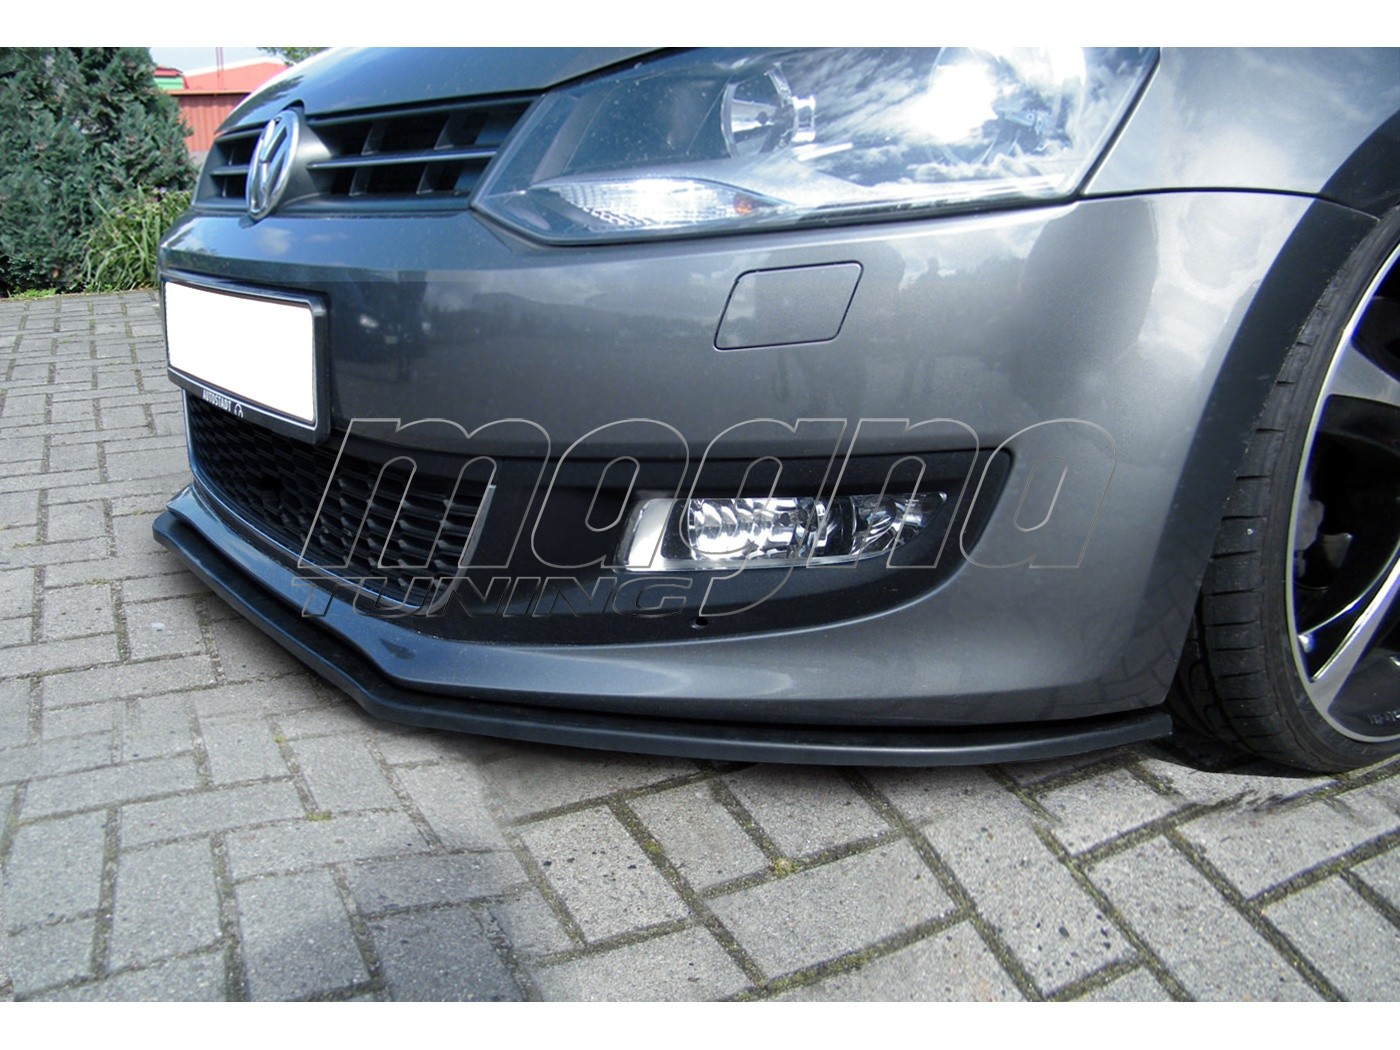 vw polo 6r i tech front bumper extension. Black Bedroom Furniture Sets. Home Design Ideas